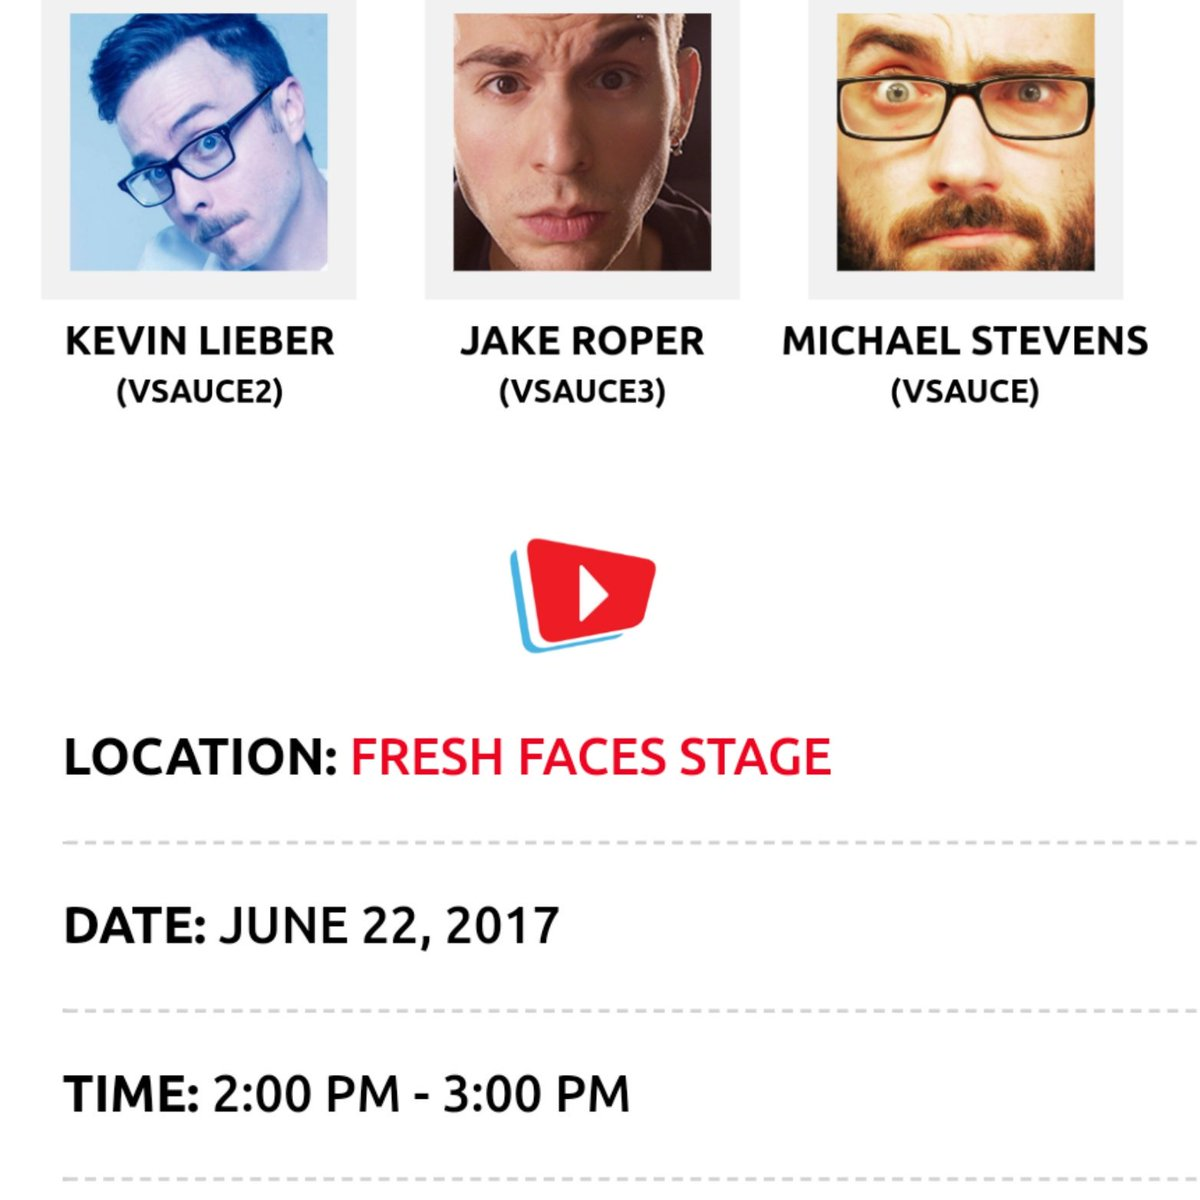 VSAUCE Q&A today at 2pm @VidCon SEE YOU THERE #vidcon2017 https://...